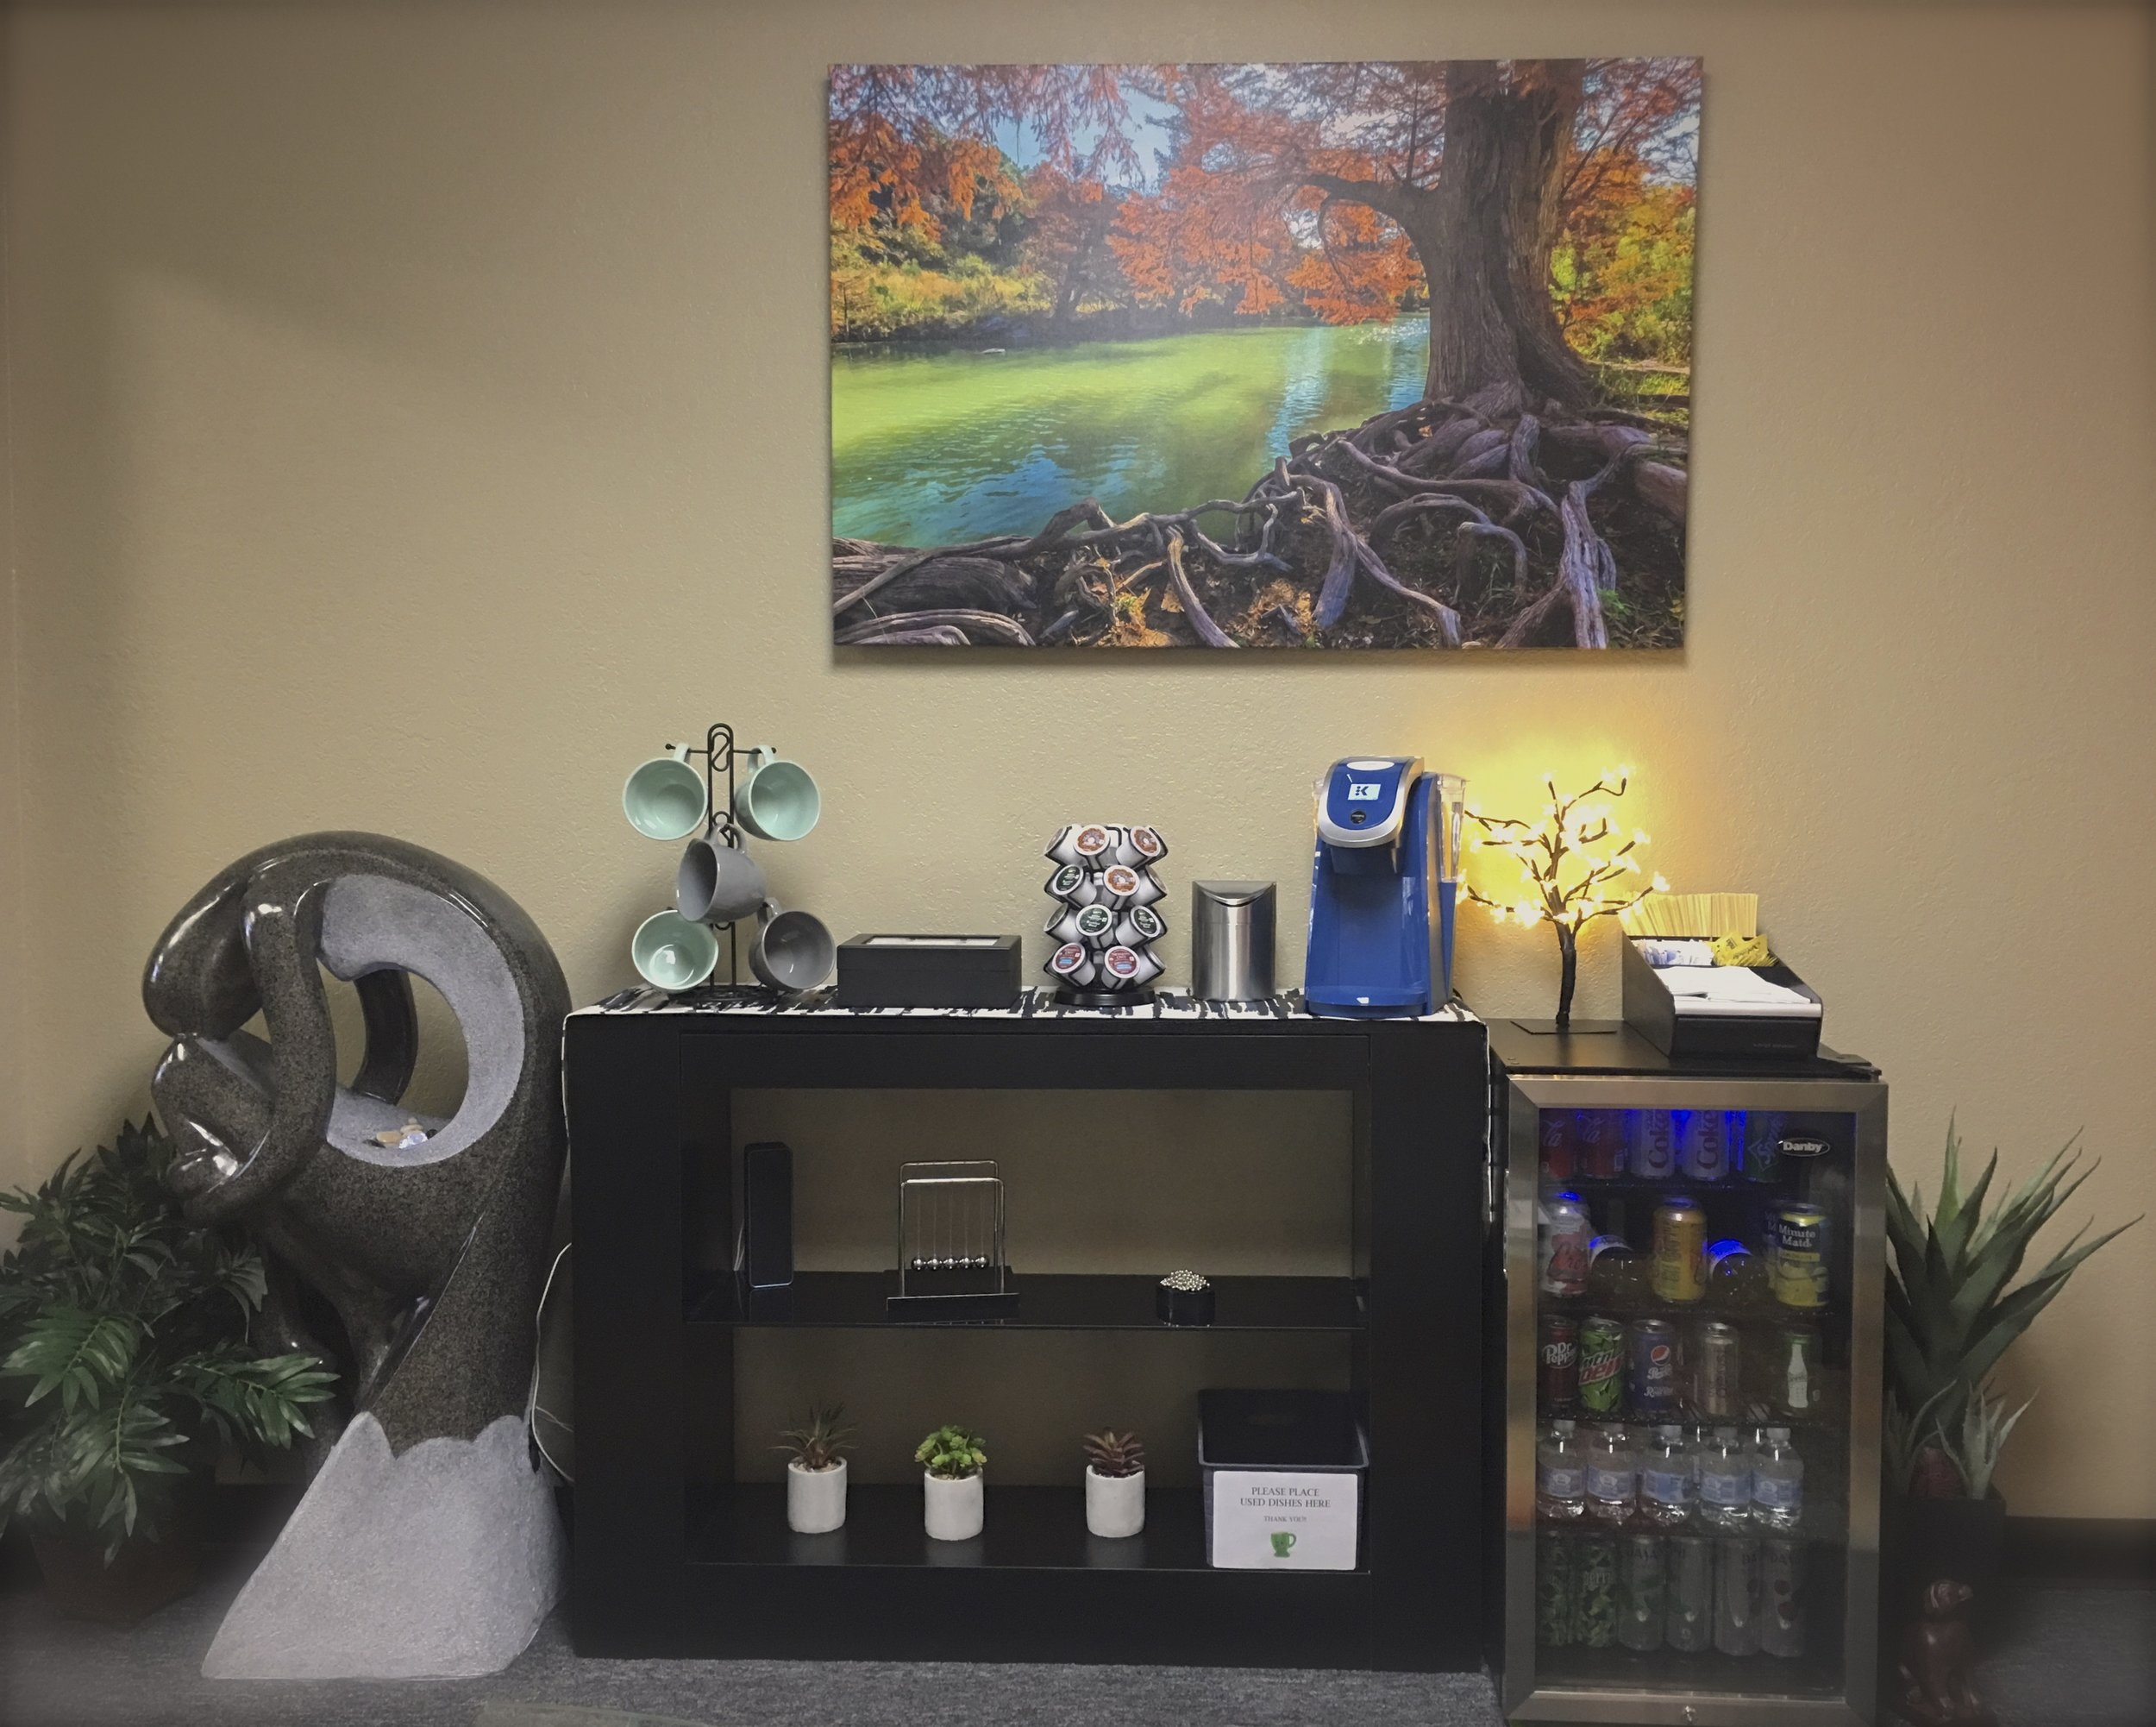 The FCS reception area features a complimentary beverage center stocked with soda, coffee, tea, and water.